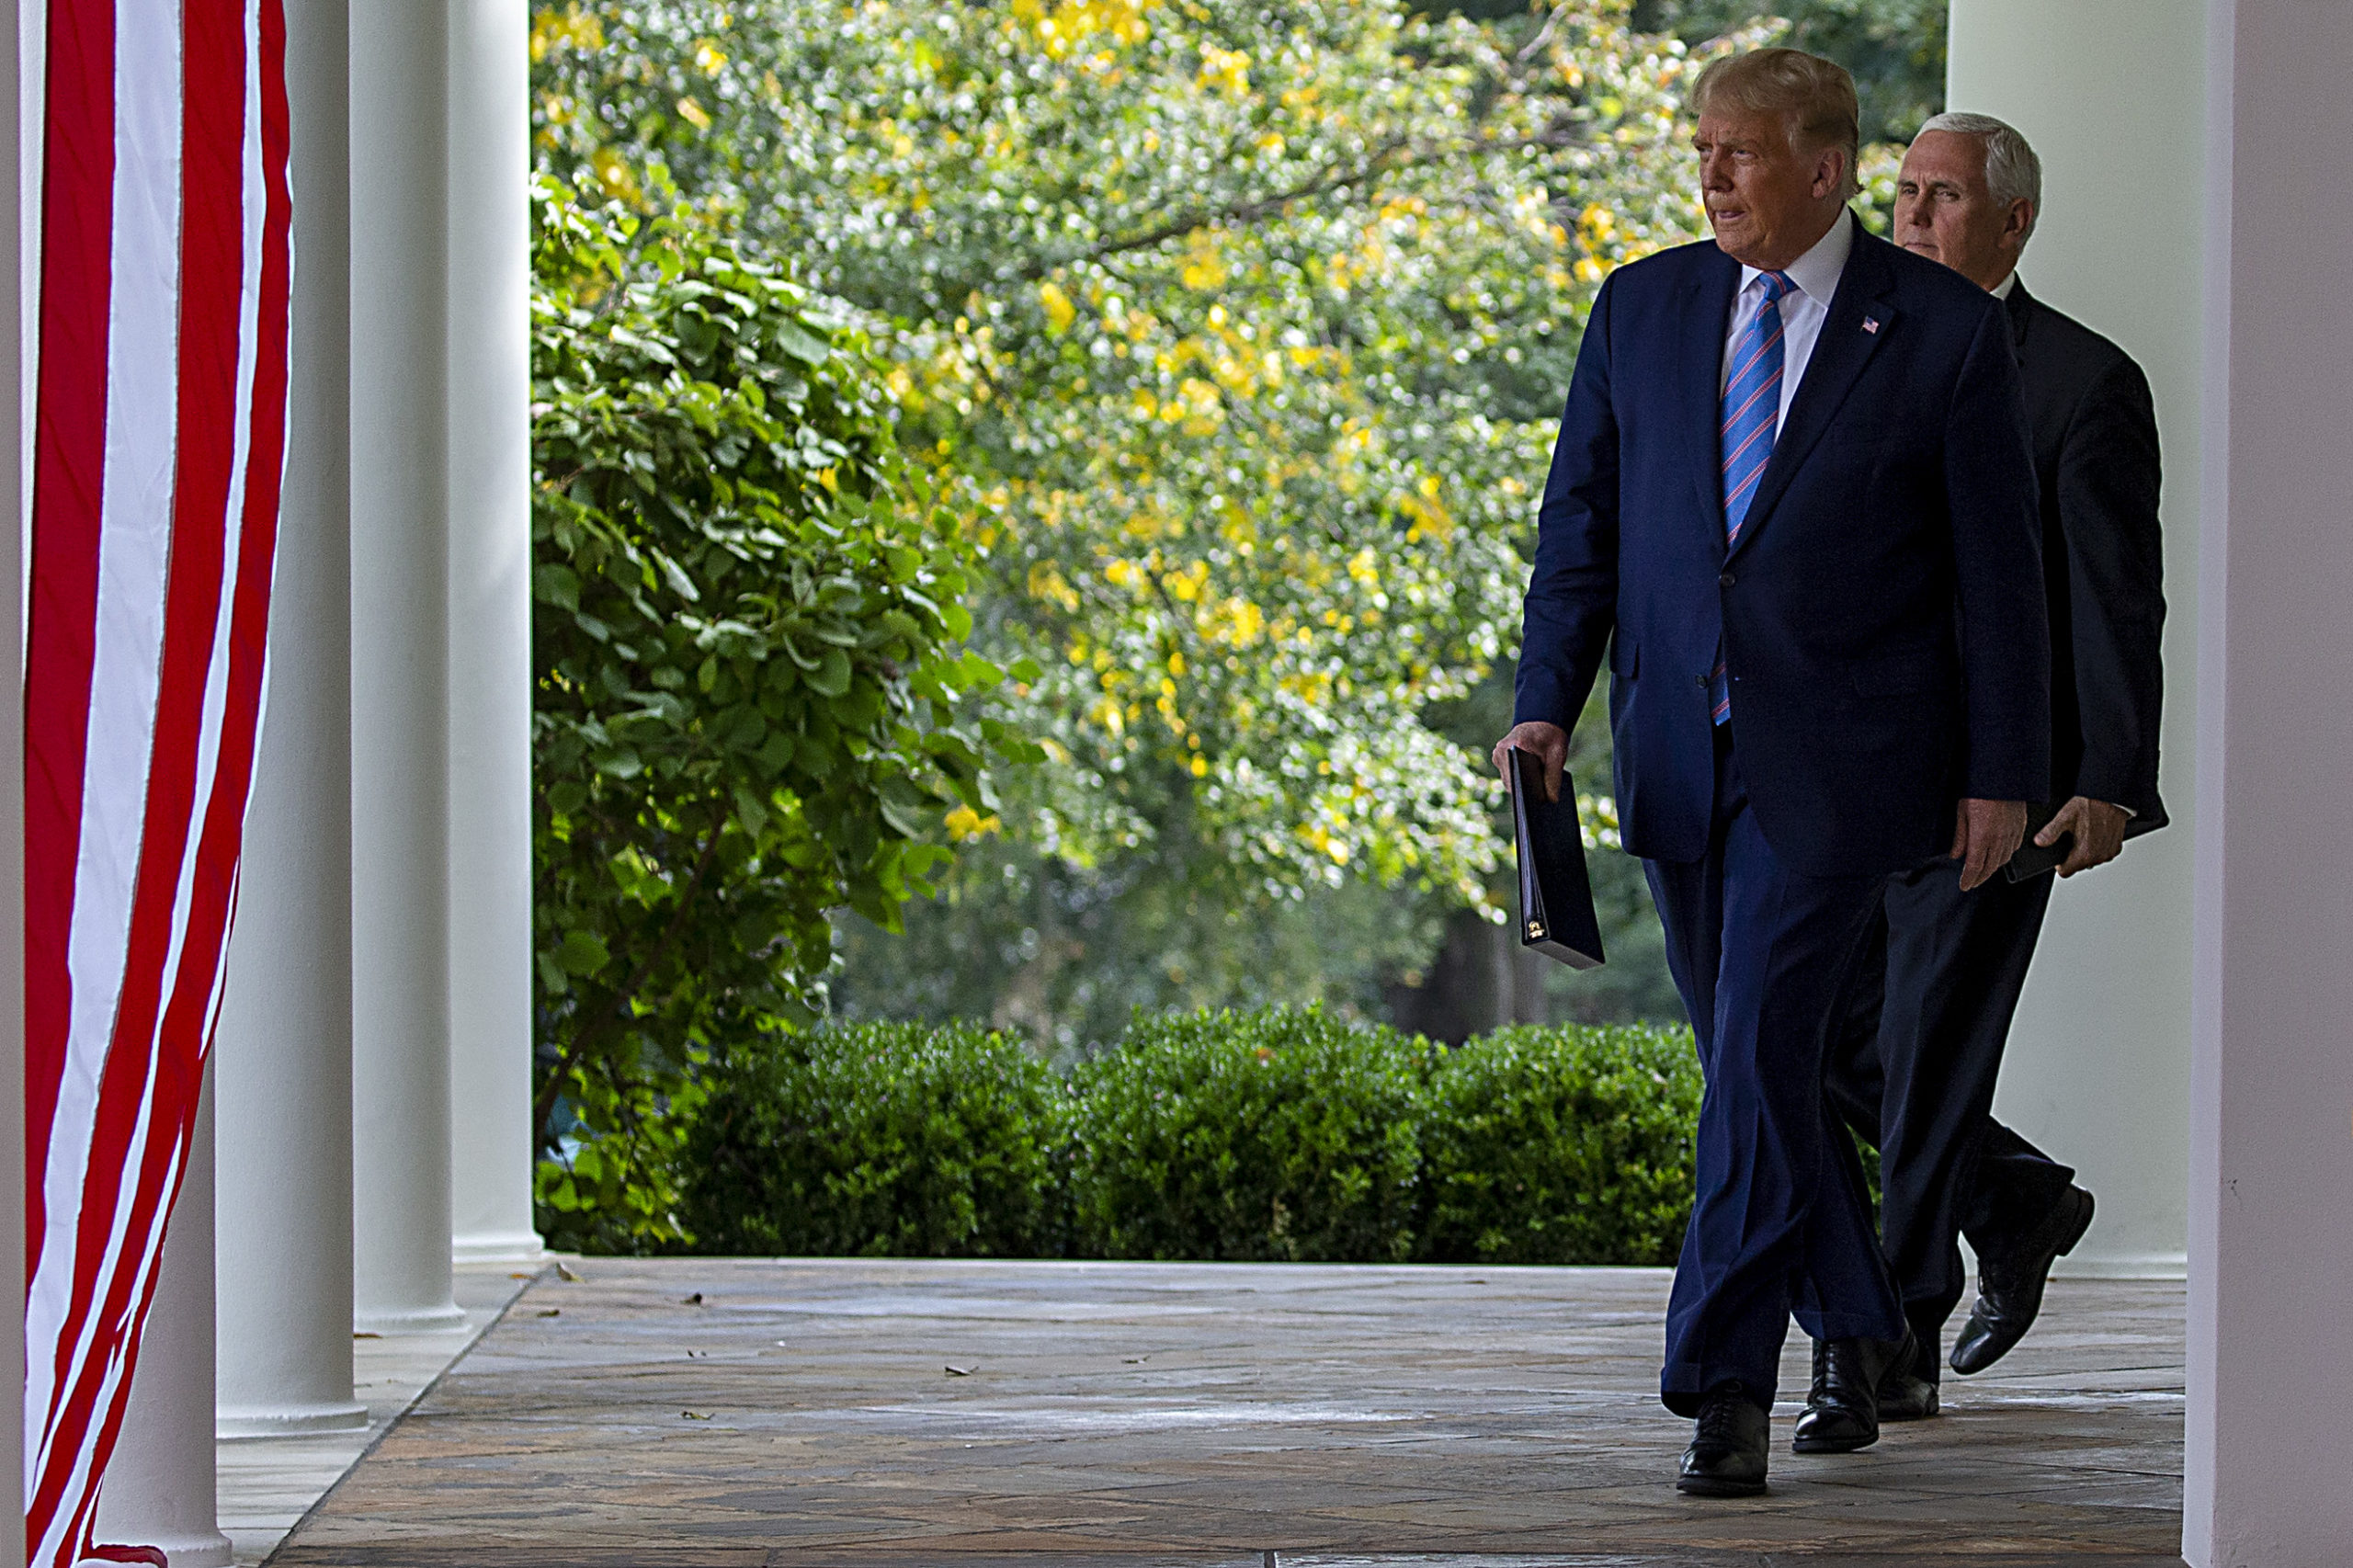 WASHINGTON, DC - SEPTEMBER 28: U.S. President Donald Trump followed by VIce President Mike Pence walk up to deliver an update on the nations coronavirus testing strategy in the Rose Garden of the White House on September 28, 2020 in Washington, DC.As the totals in the US reaches more than 7.1 million confirmed cases and 204,000 deaths, globally, there has been more than 33.1 million cases and more than998,000million fatalities according to John Hopkins University data. (Photo by Tasos Katopodis/Getty Images)